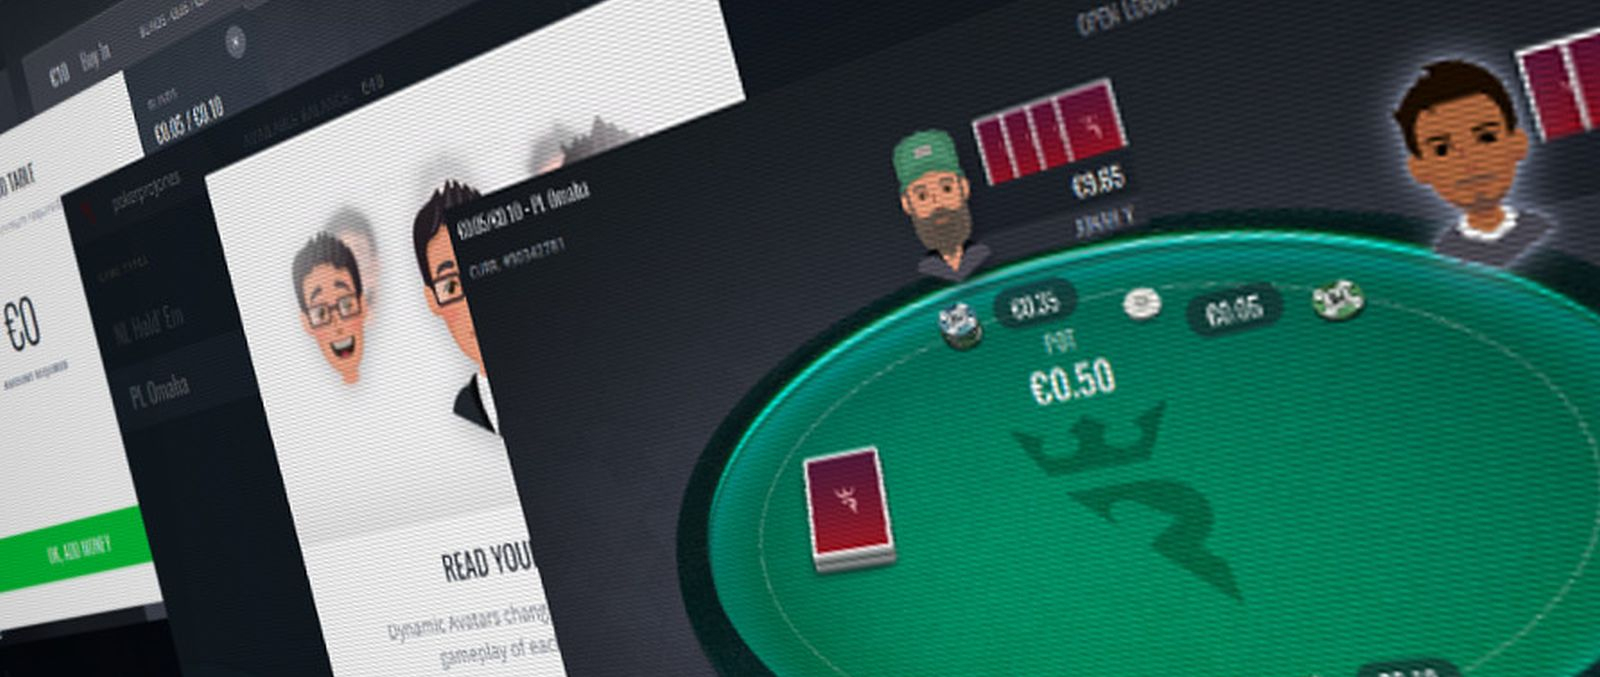 Run It Once Poker: Everything You Need To Know - California Poker Rooms Map